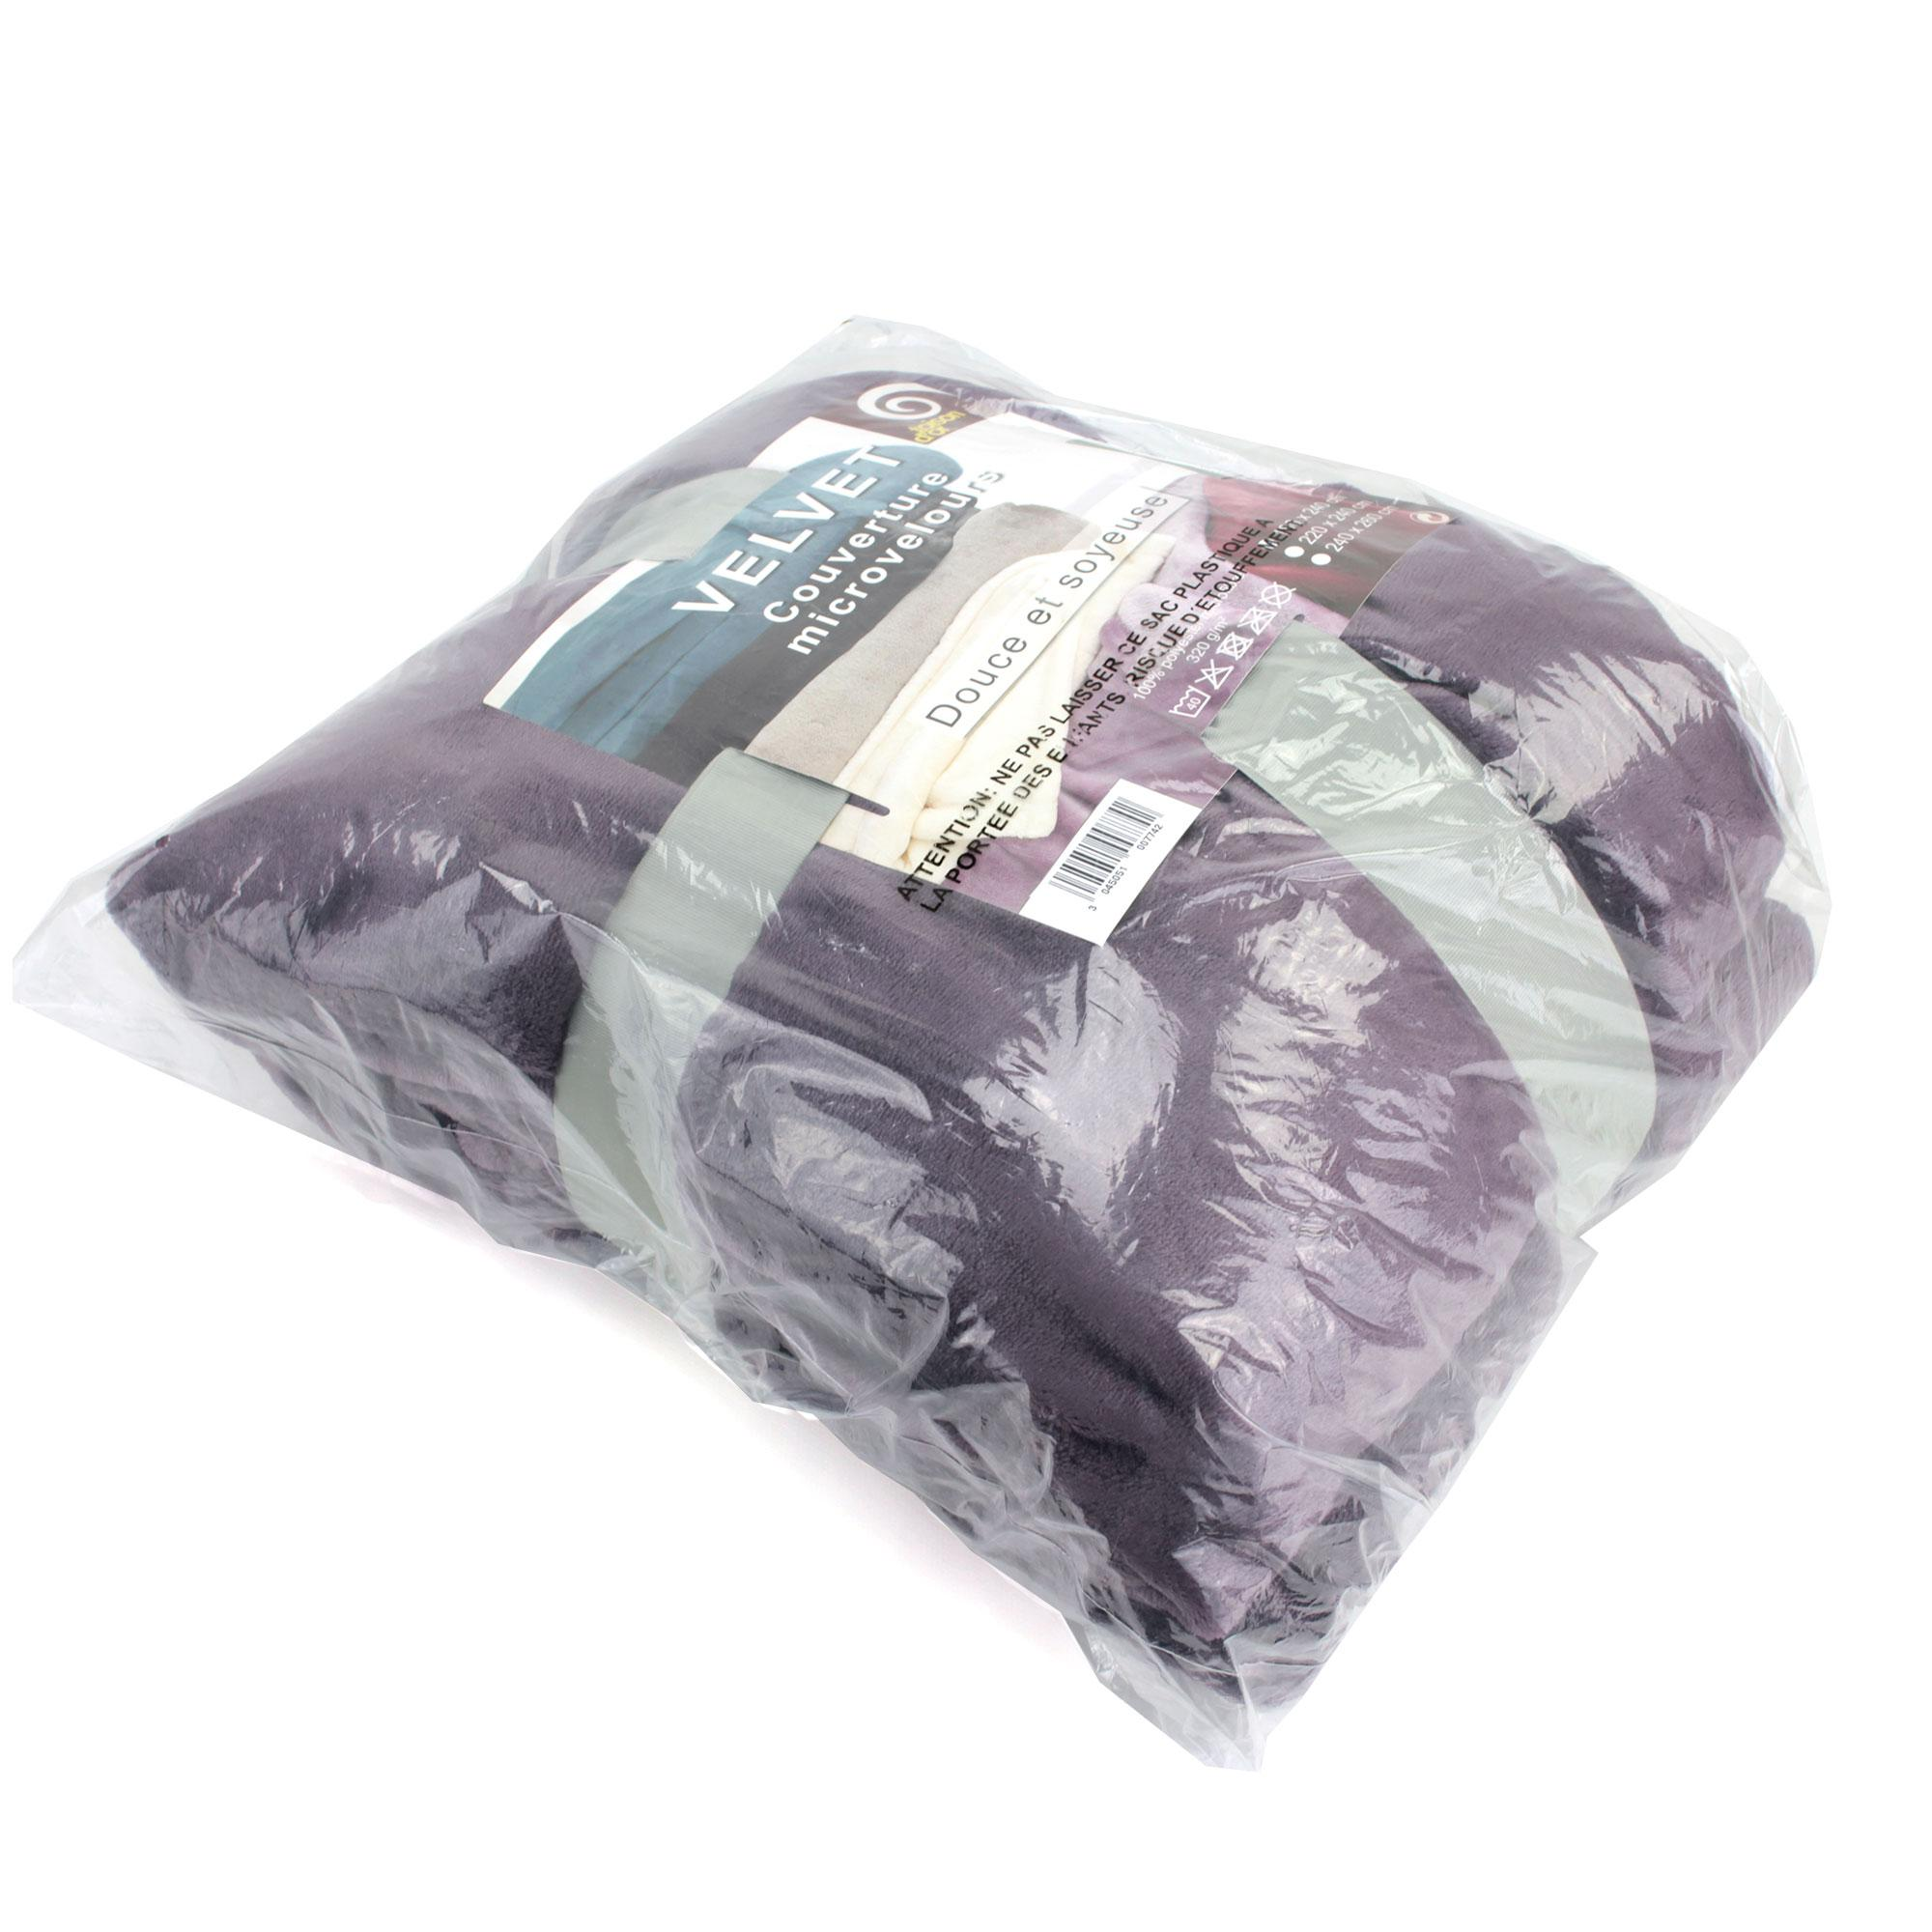 couverture polaire 240x260 microfibre velvet violet prune ebay. Black Bedroom Furniture Sets. Home Design Ideas